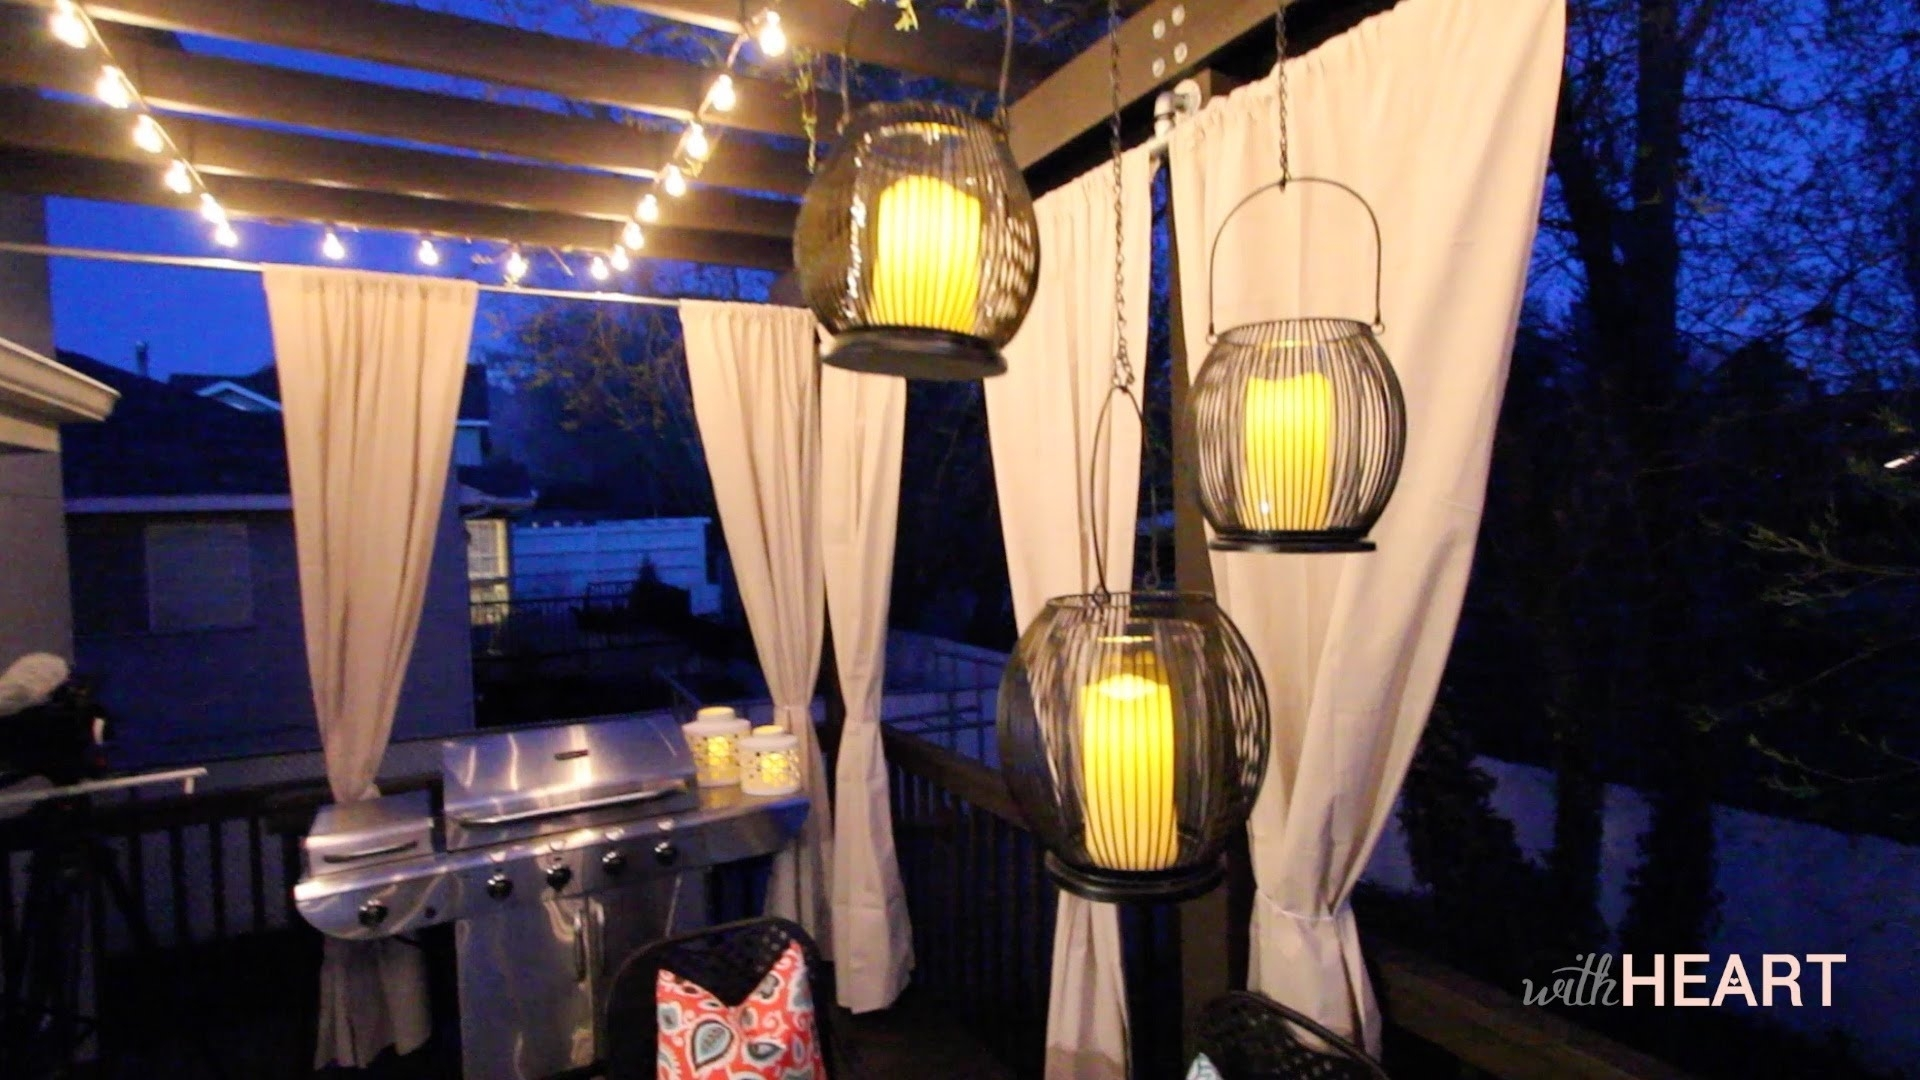 Outdoor String Lights And Hanging Lanterns | Withheart – Youtube For Outdoor Hanging Lights For Patio (View 13 of 15)